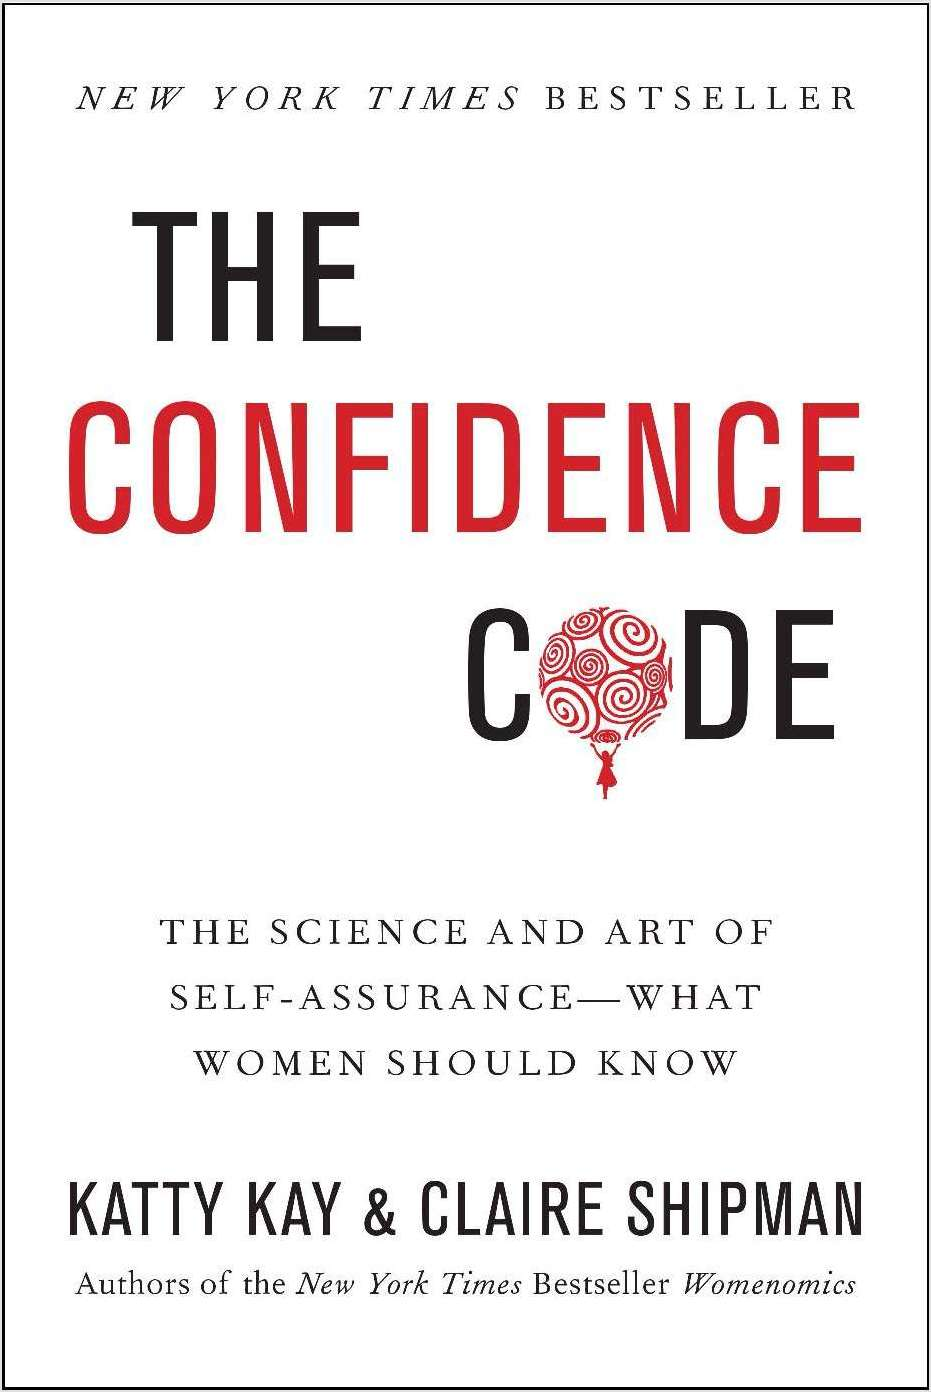 The Confidence Code: The Science and Art of Self-Assurance -- What Women Should Know